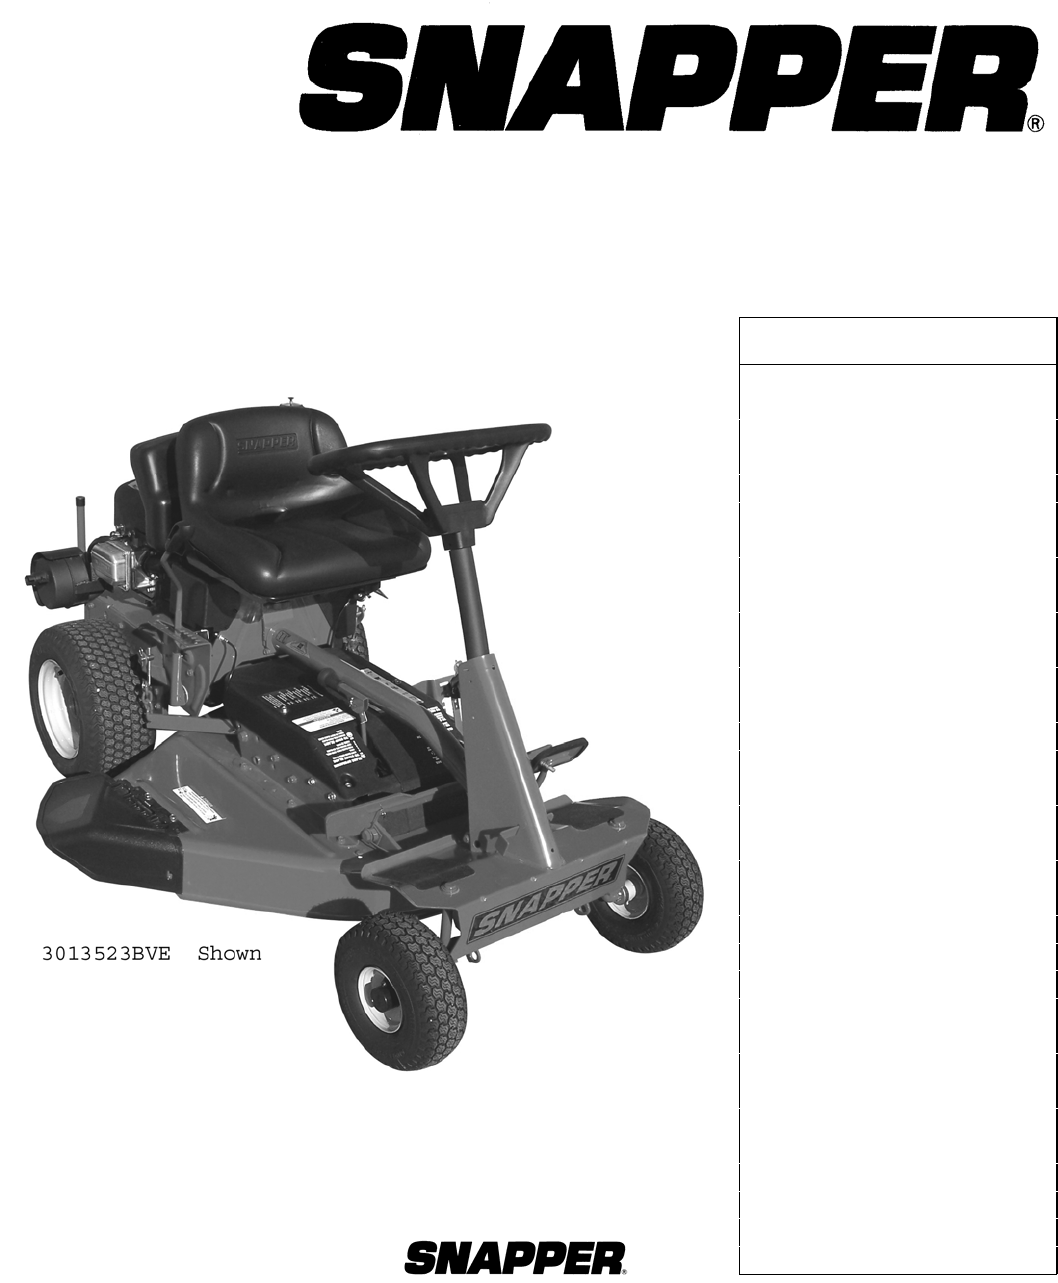 snapper lawn mower 2812523bve 7800104 user guide manualsonline com rh manualsonline com Snapper Lawn Mower Engine Replacement snapper comet riding mower service manual